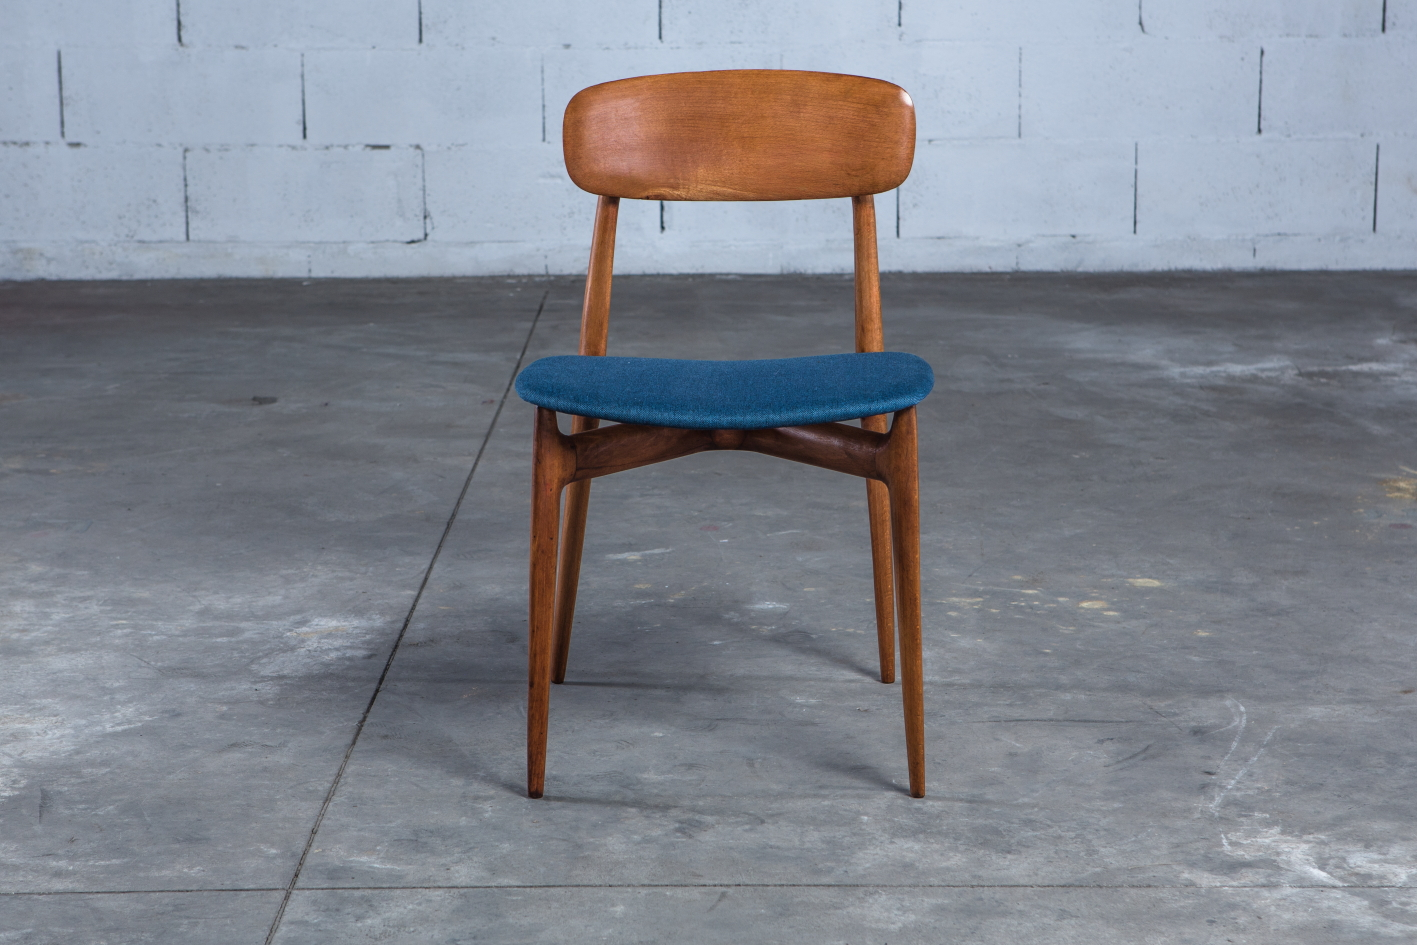 4 Mid century Vintage Italian dining chairs Ico Parisi 1950s - Front view